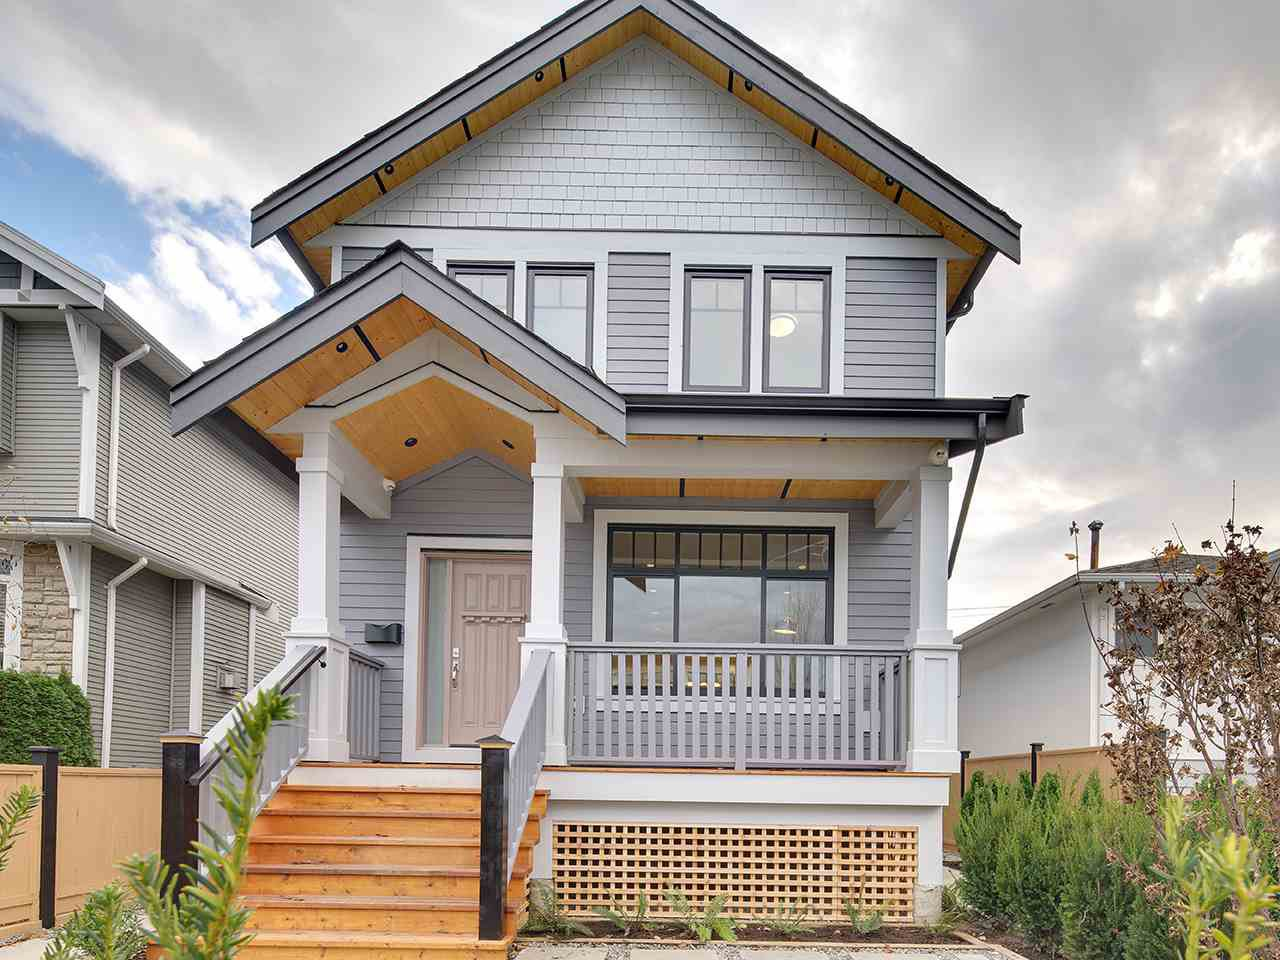 Main Photo: 1524 E PENDER Street in Vancouver: Hastings House 1/2 Duplex for sale (Vancouver East)  : MLS®# R2122115